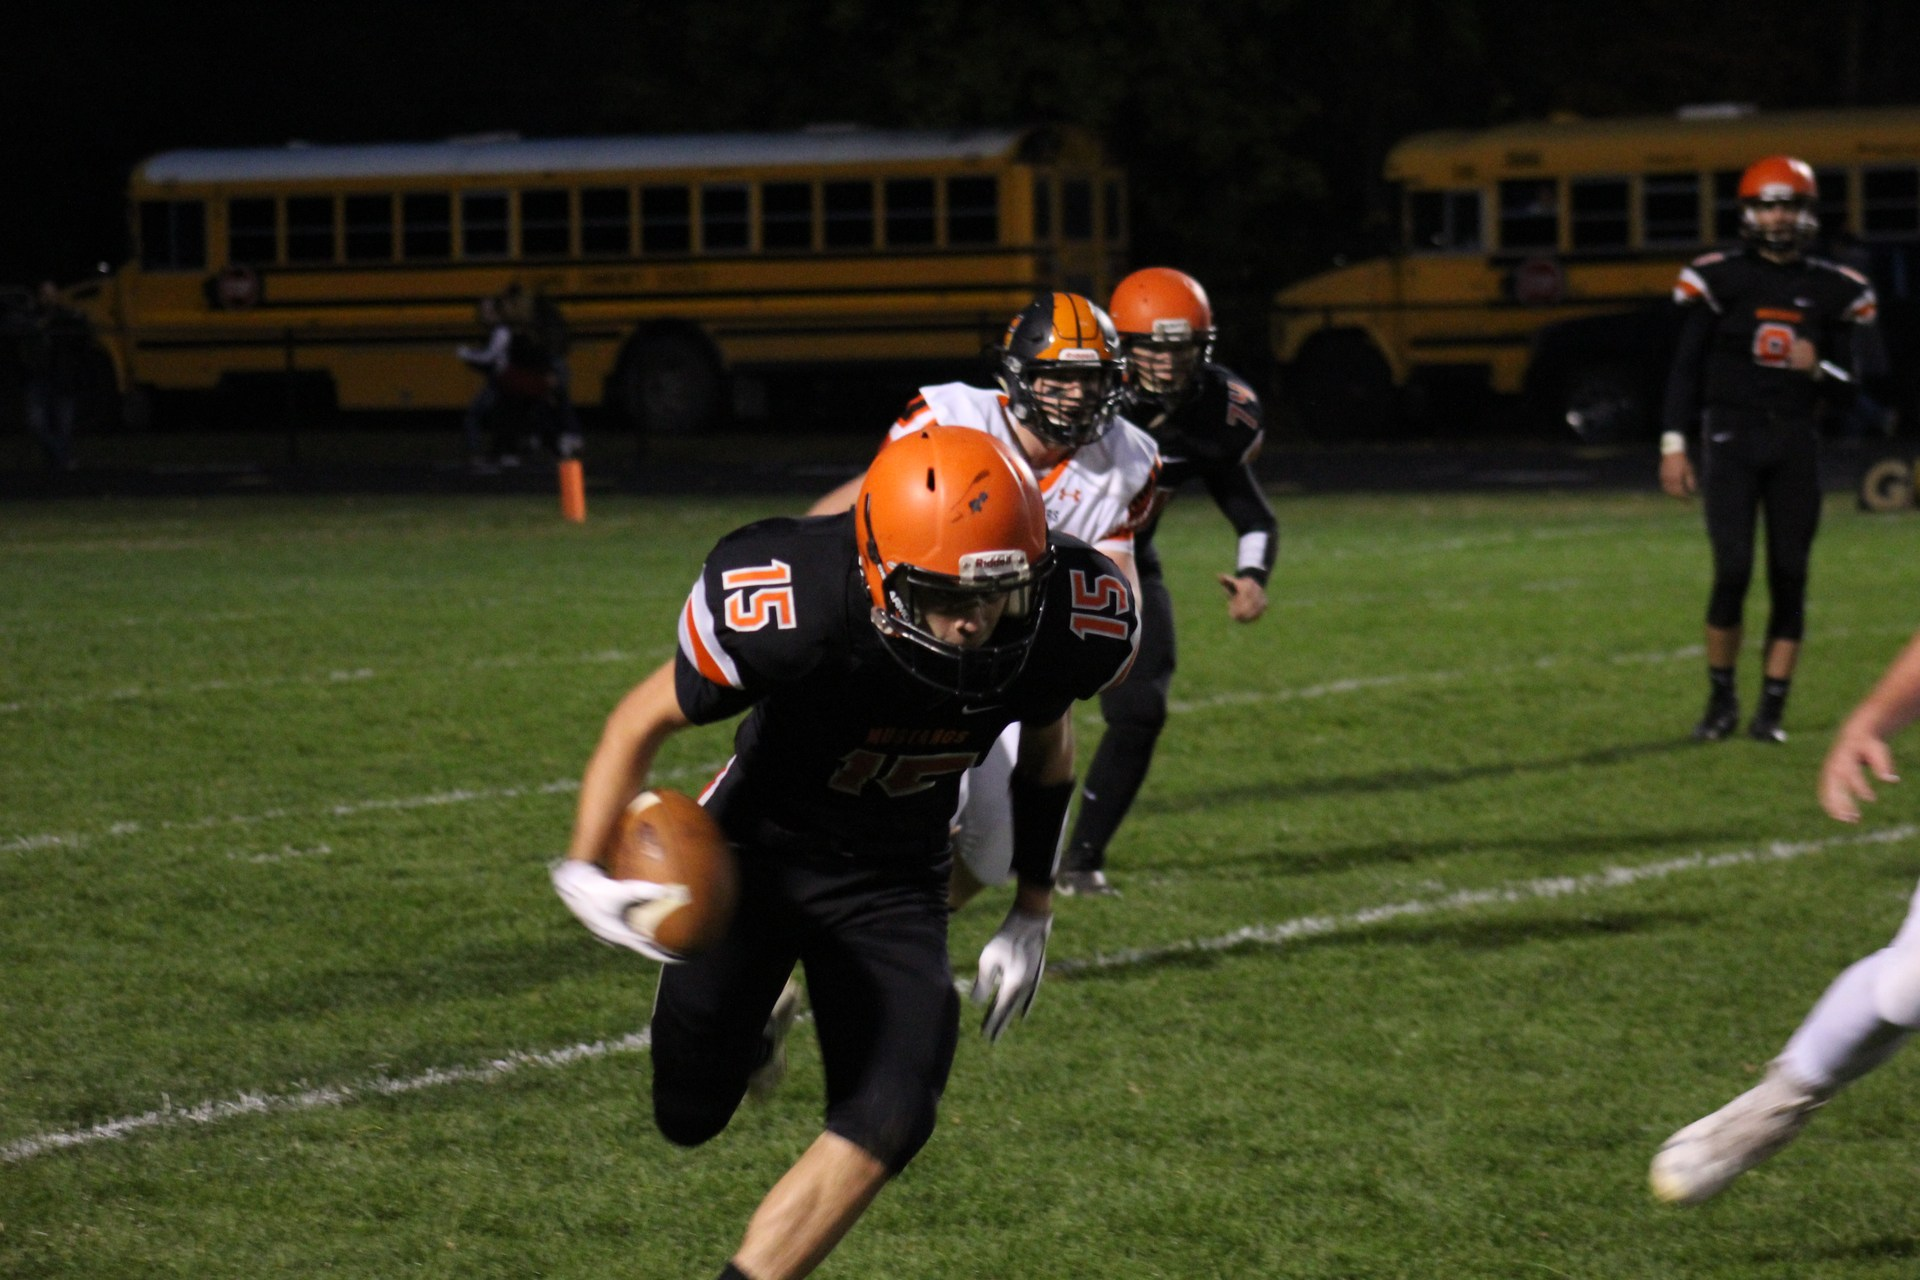 Photo of Clio football player running with the ball toward the camera